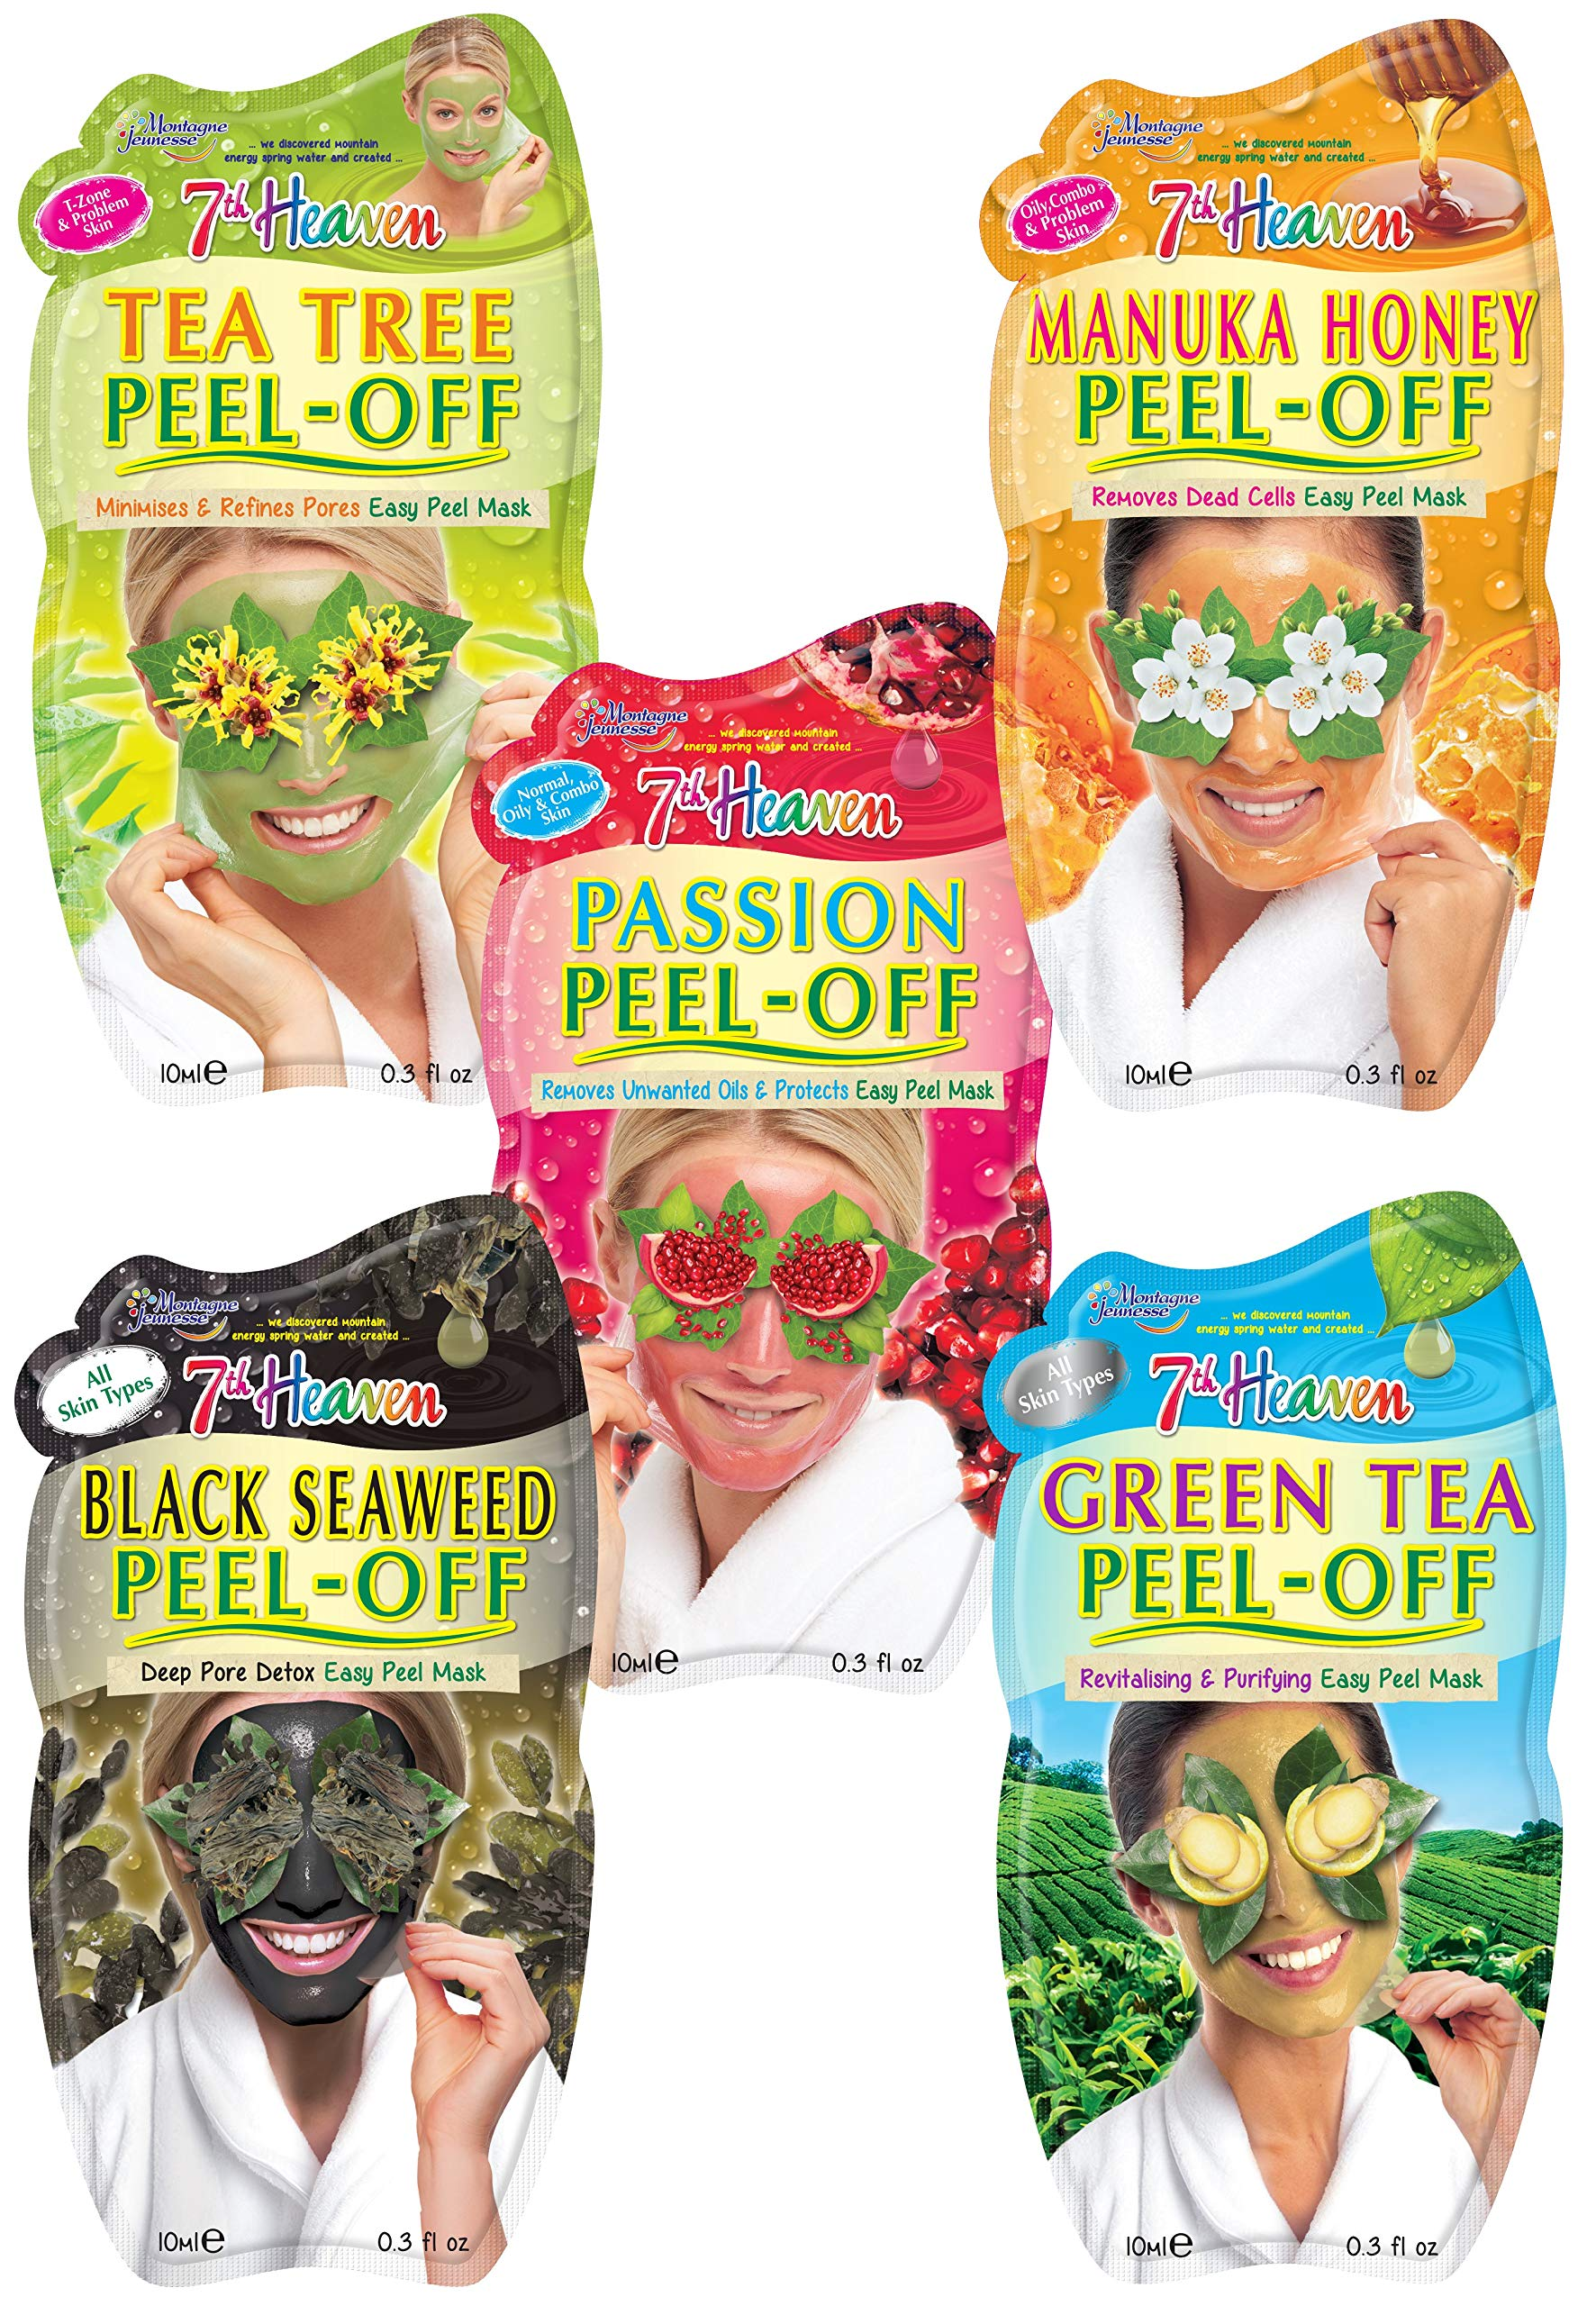 7th Heaven Pamper Peel Off Face Mask Pack with Tea Tree, Manuka Honey, Passionflower, Black Seaweed and Green Tea for All Skin Types